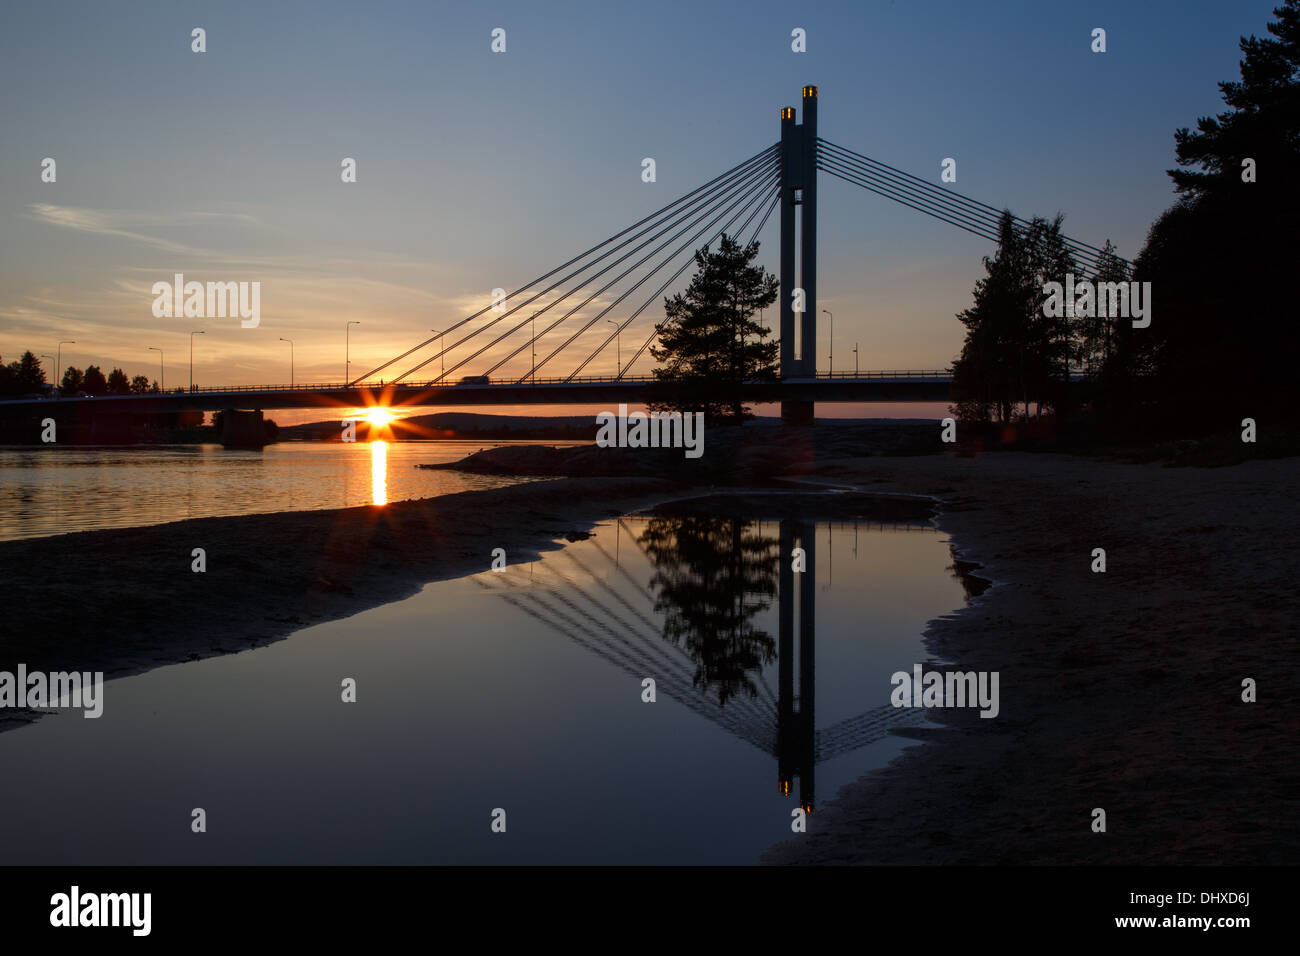 Midnight sun shining on Jätkänkynttilä (Lumberjack's Candle) bridge over the Kemijoki river in Rovaniemi by the Stock Photo